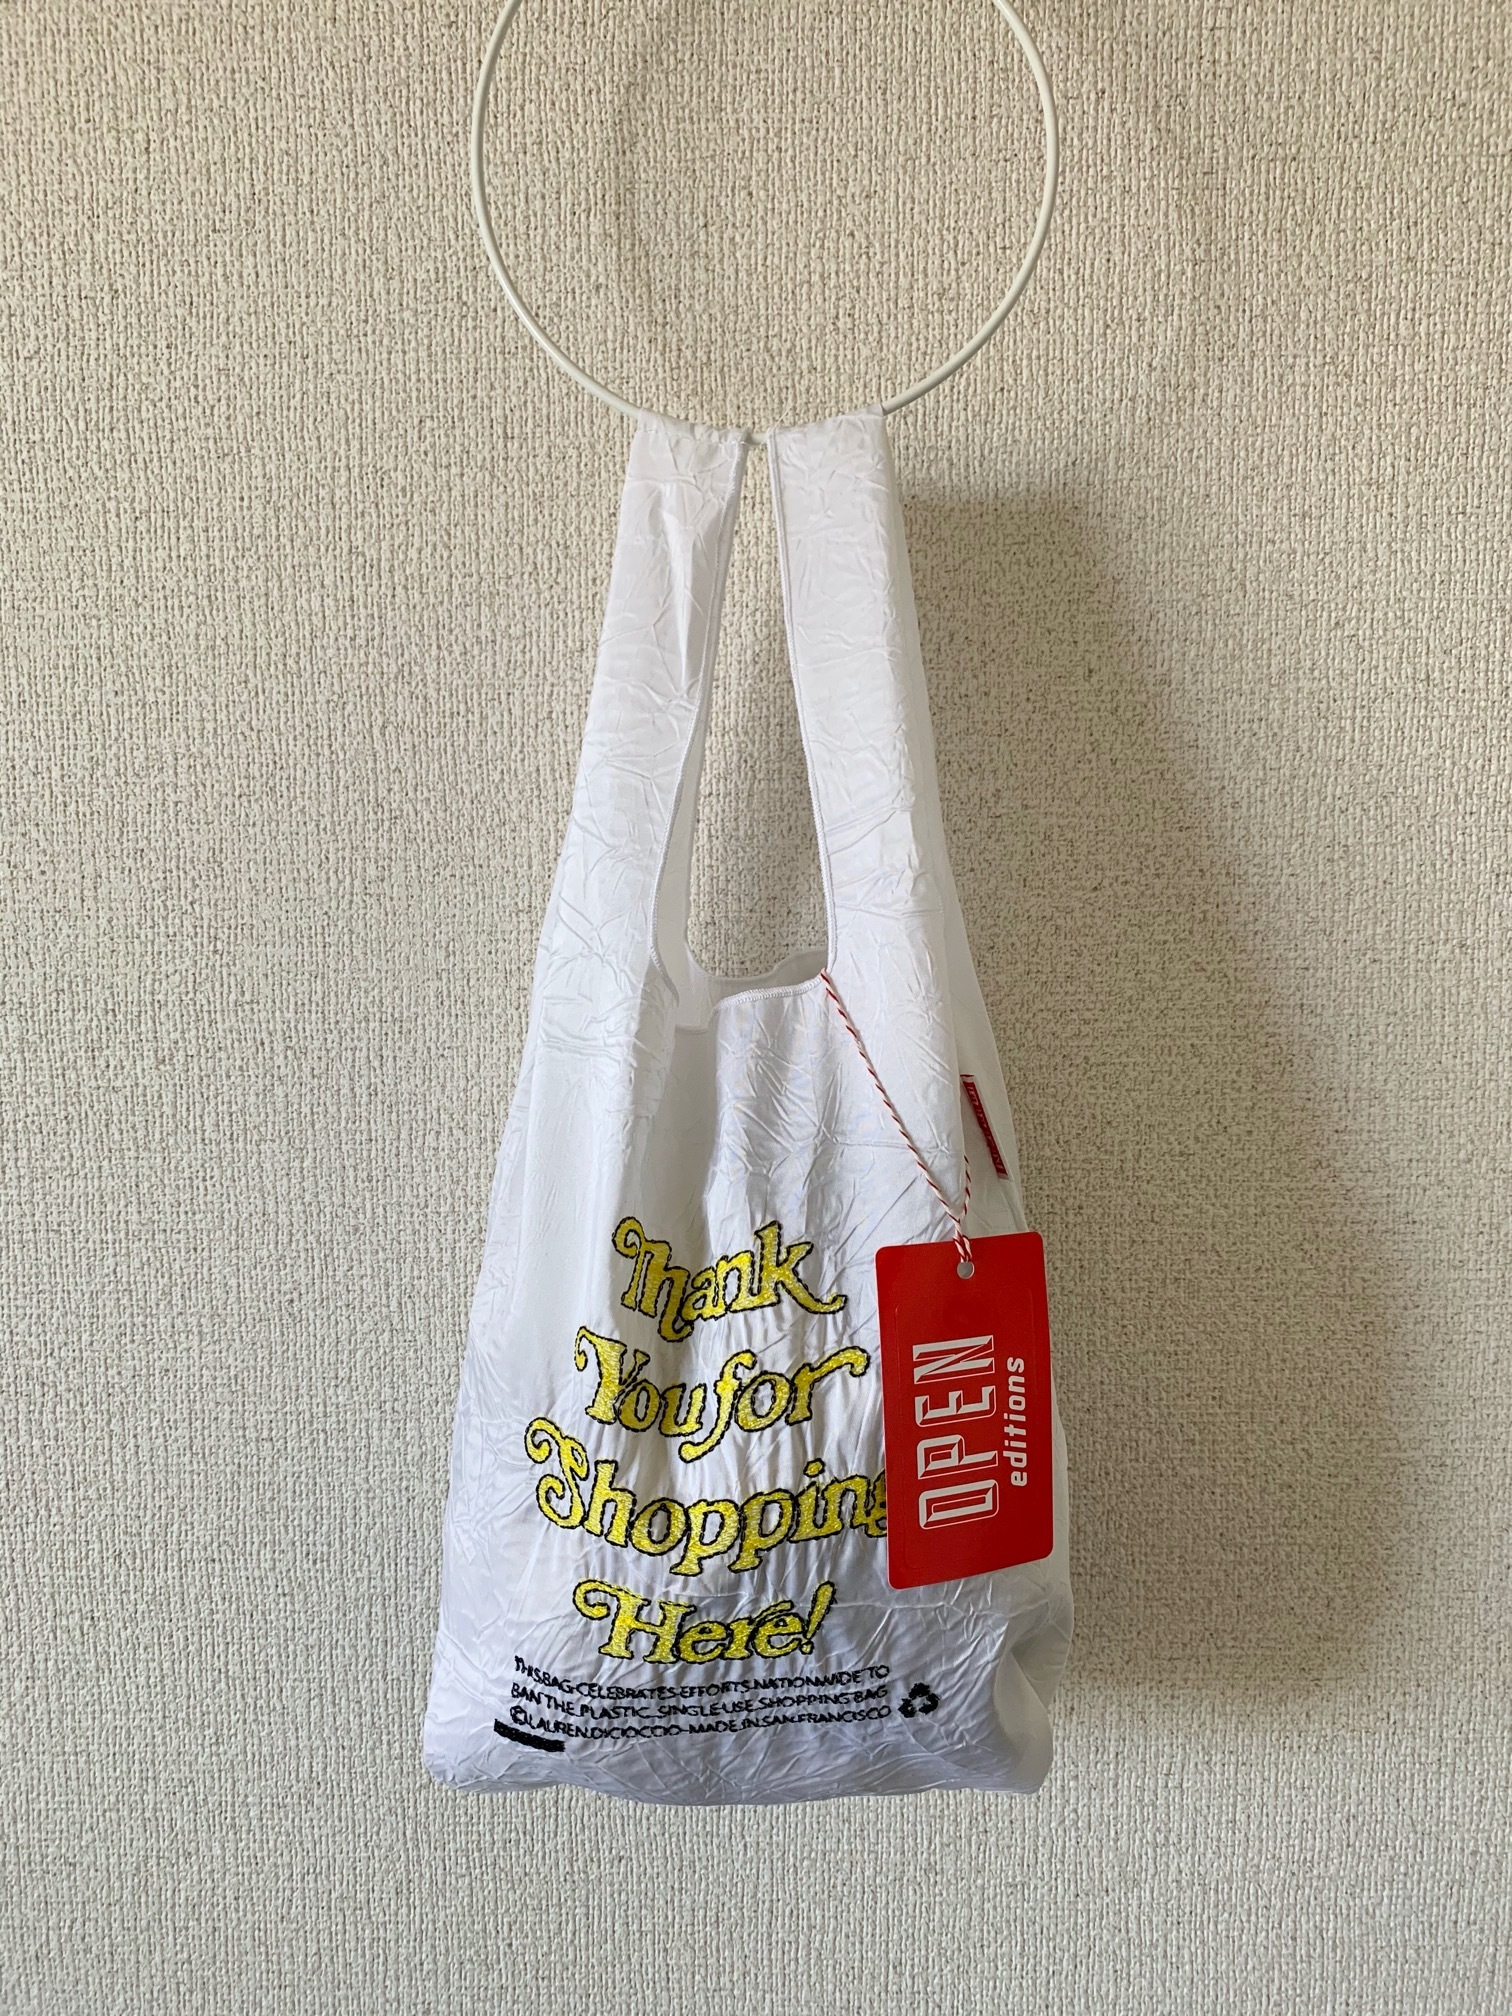 【OPEN EDITIONS】THANK YOU MINI エコバッグ/ THANK YOU FOR SHOPPING HERE White